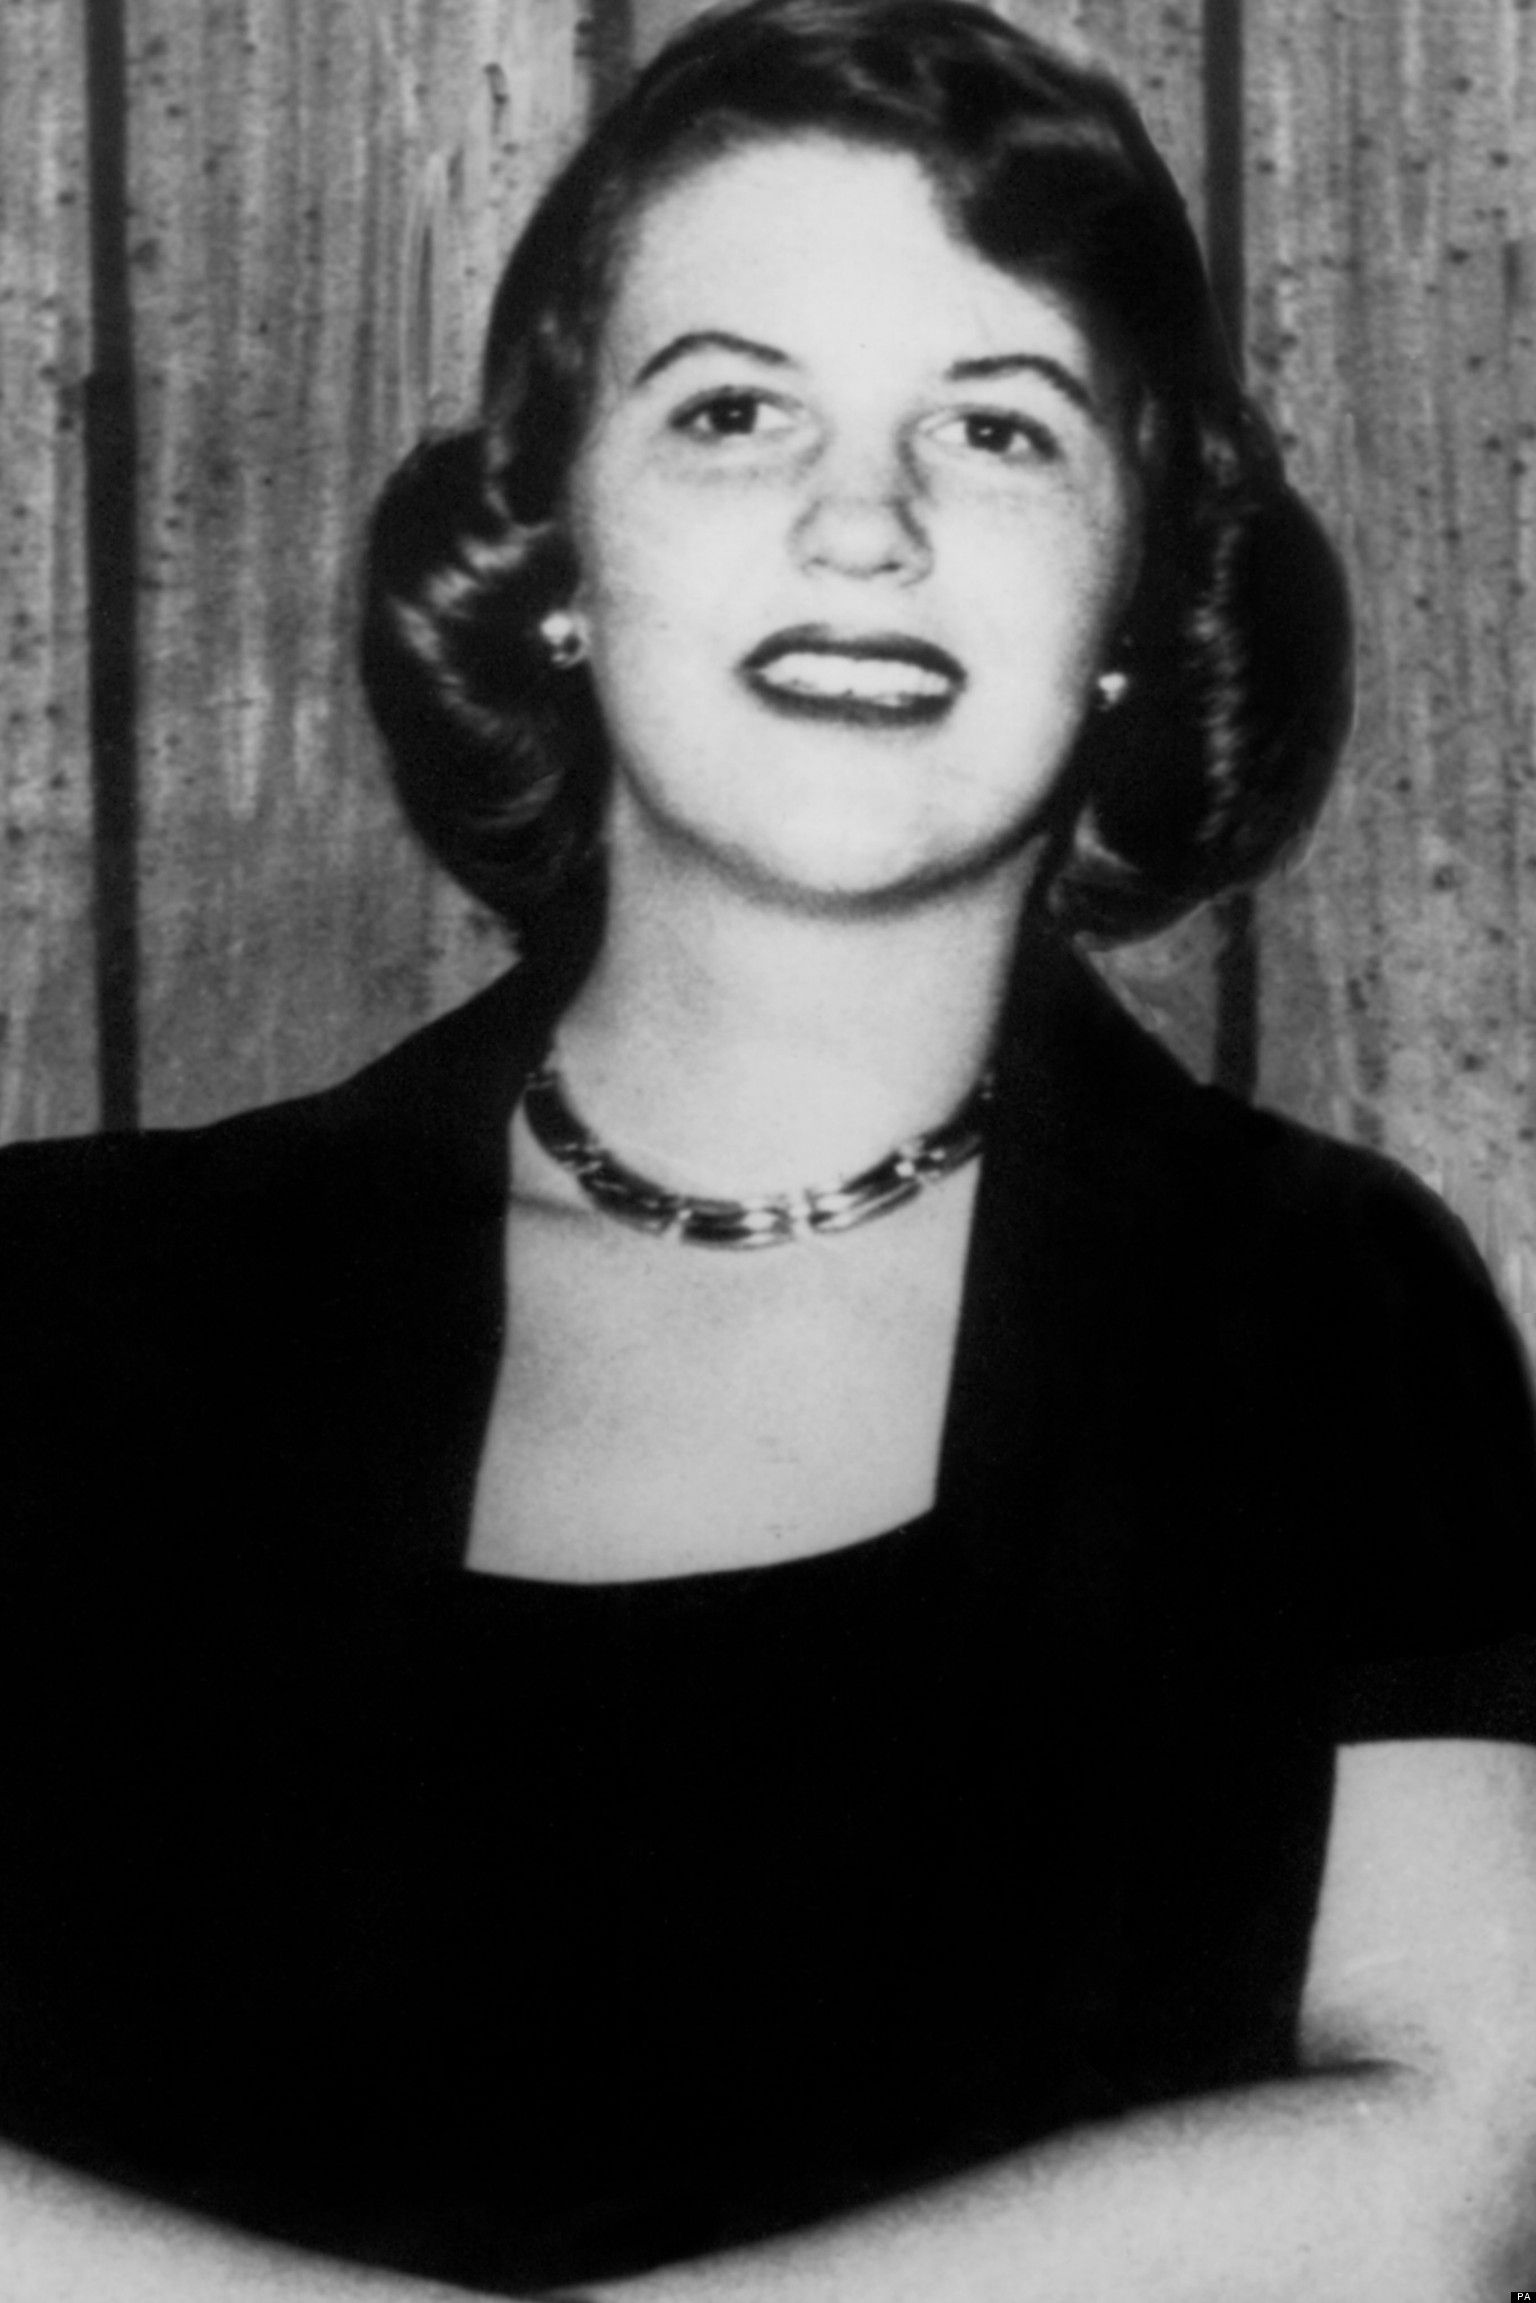 syliva plath One of the poets to choose from is sylvia plath after reading a bit about her life i  was very interested i think interest in the poet is what is most.